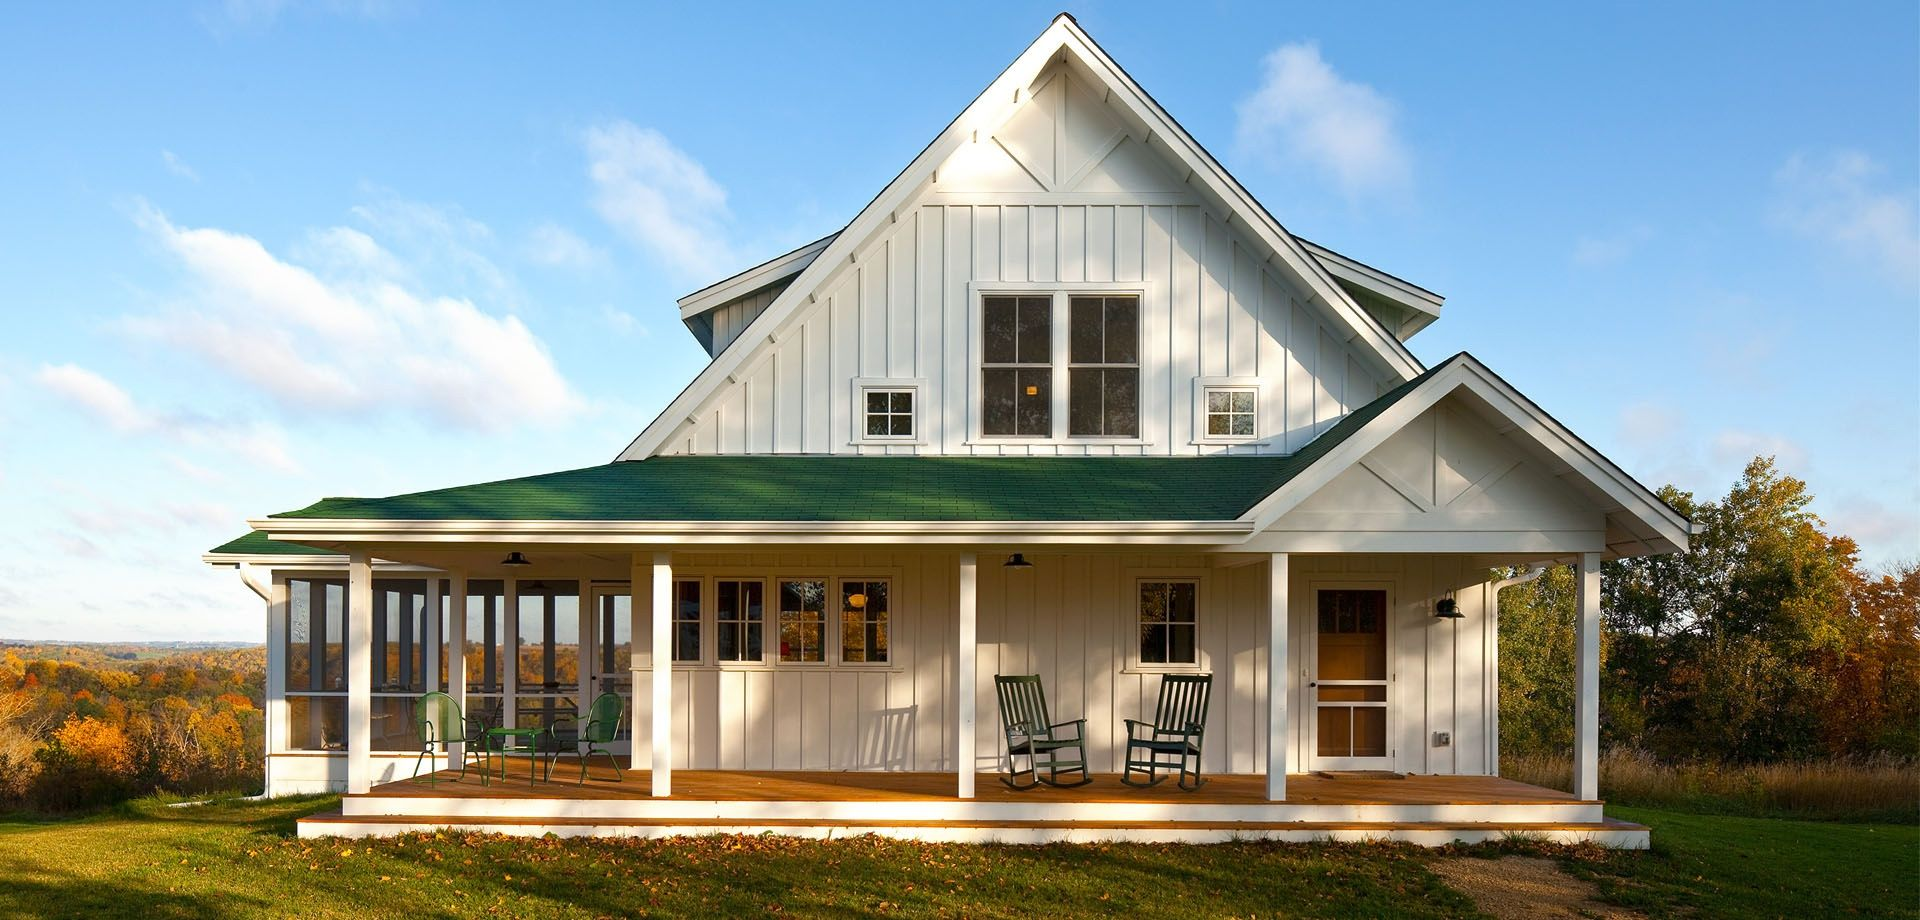 Holly ridge farmhouse we like the roofline shed dormers for Texas farmhouse plans